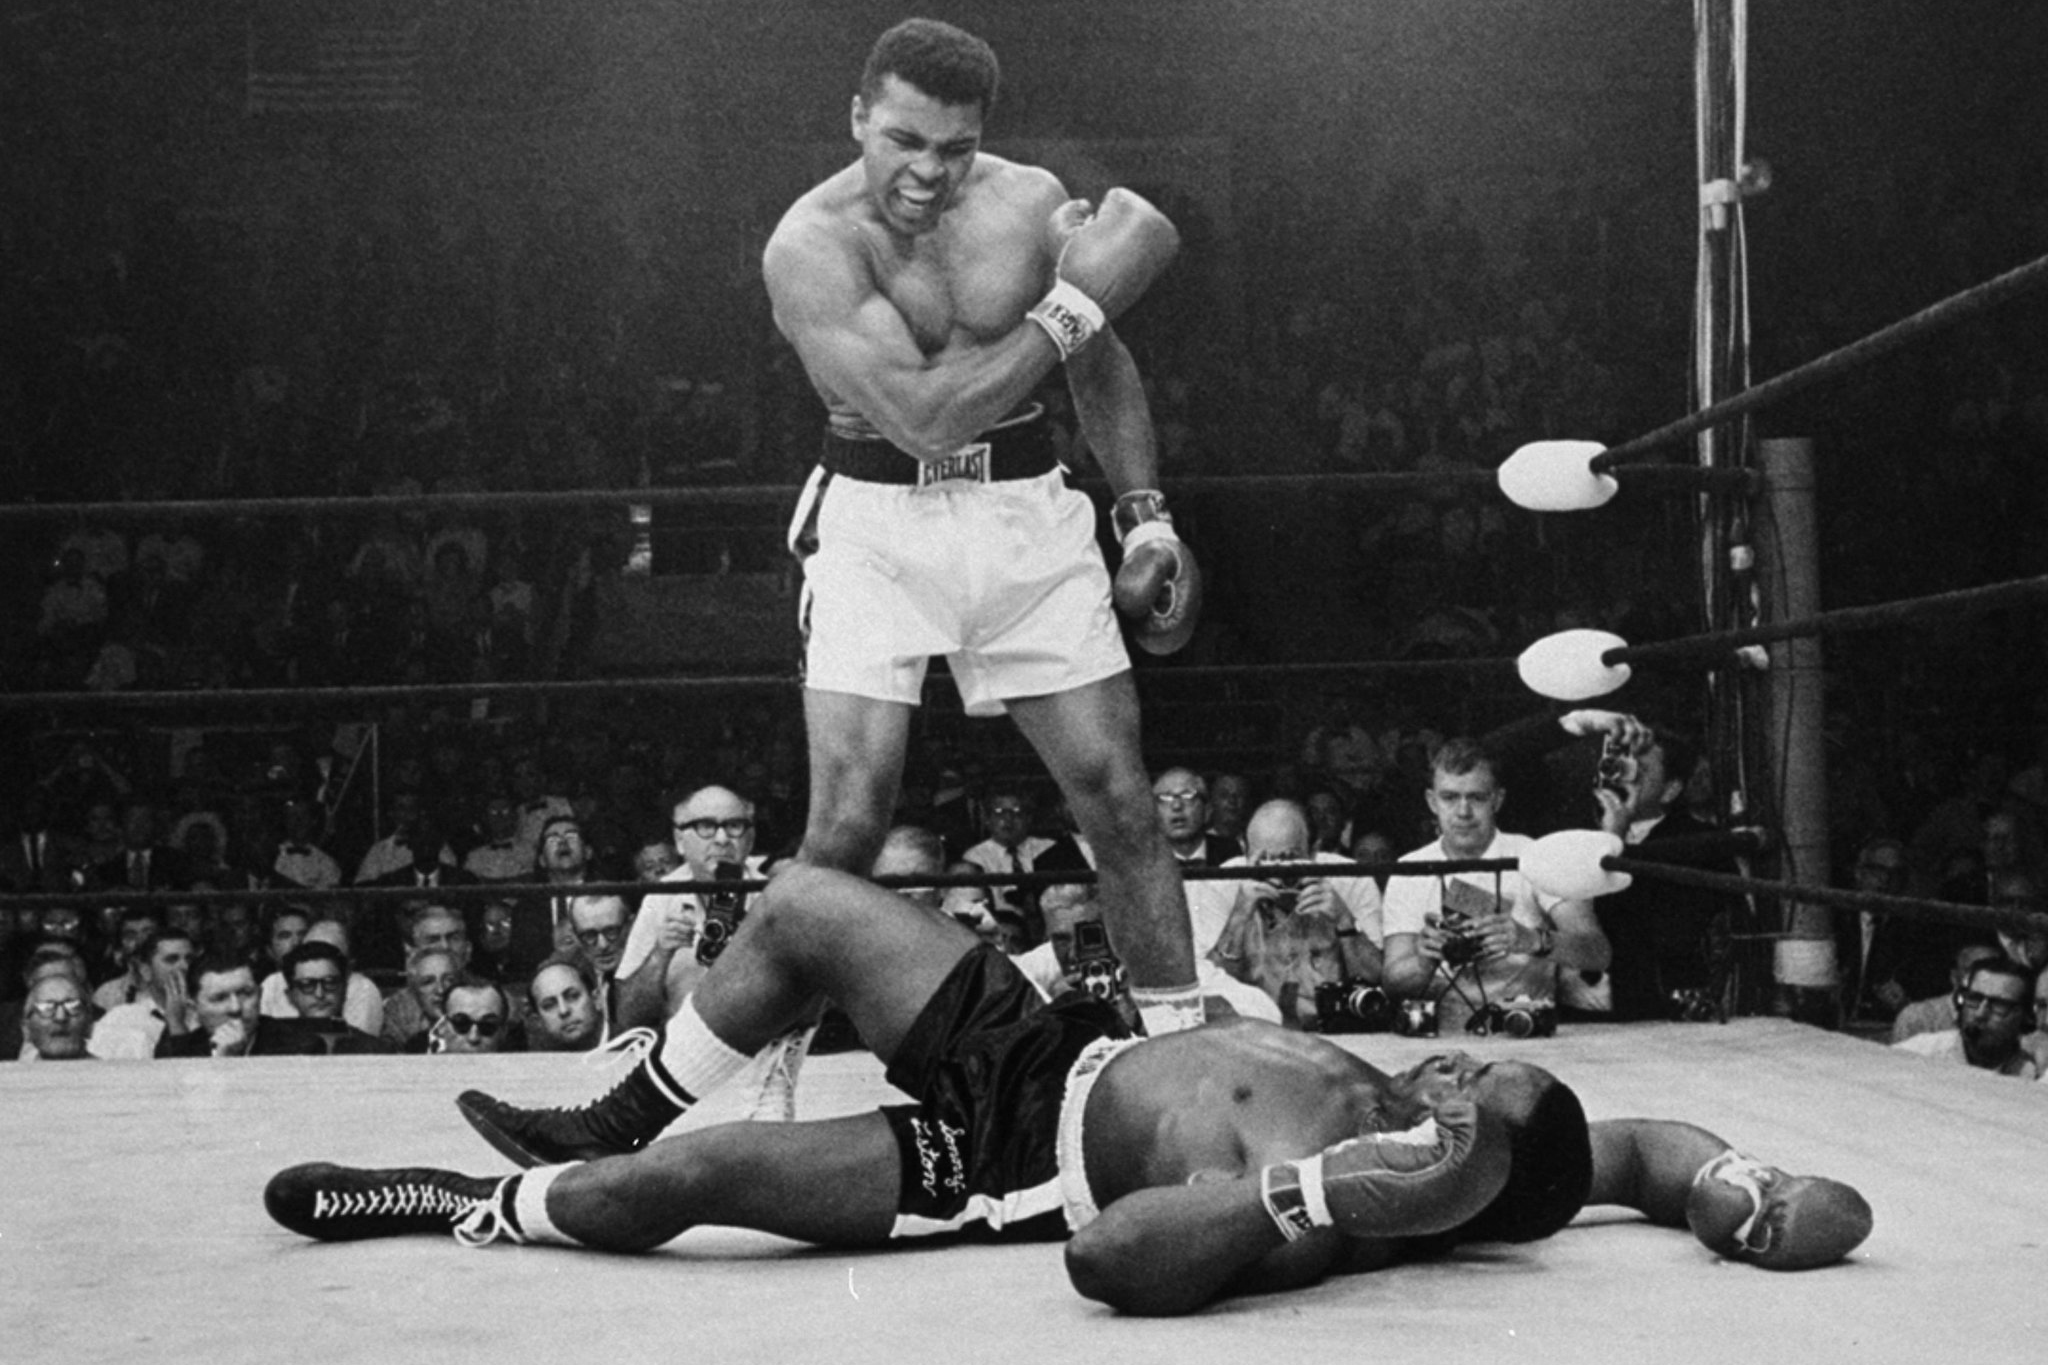 muhammad ali sonny liston 2 ii maine knockout standing over ring ground fight